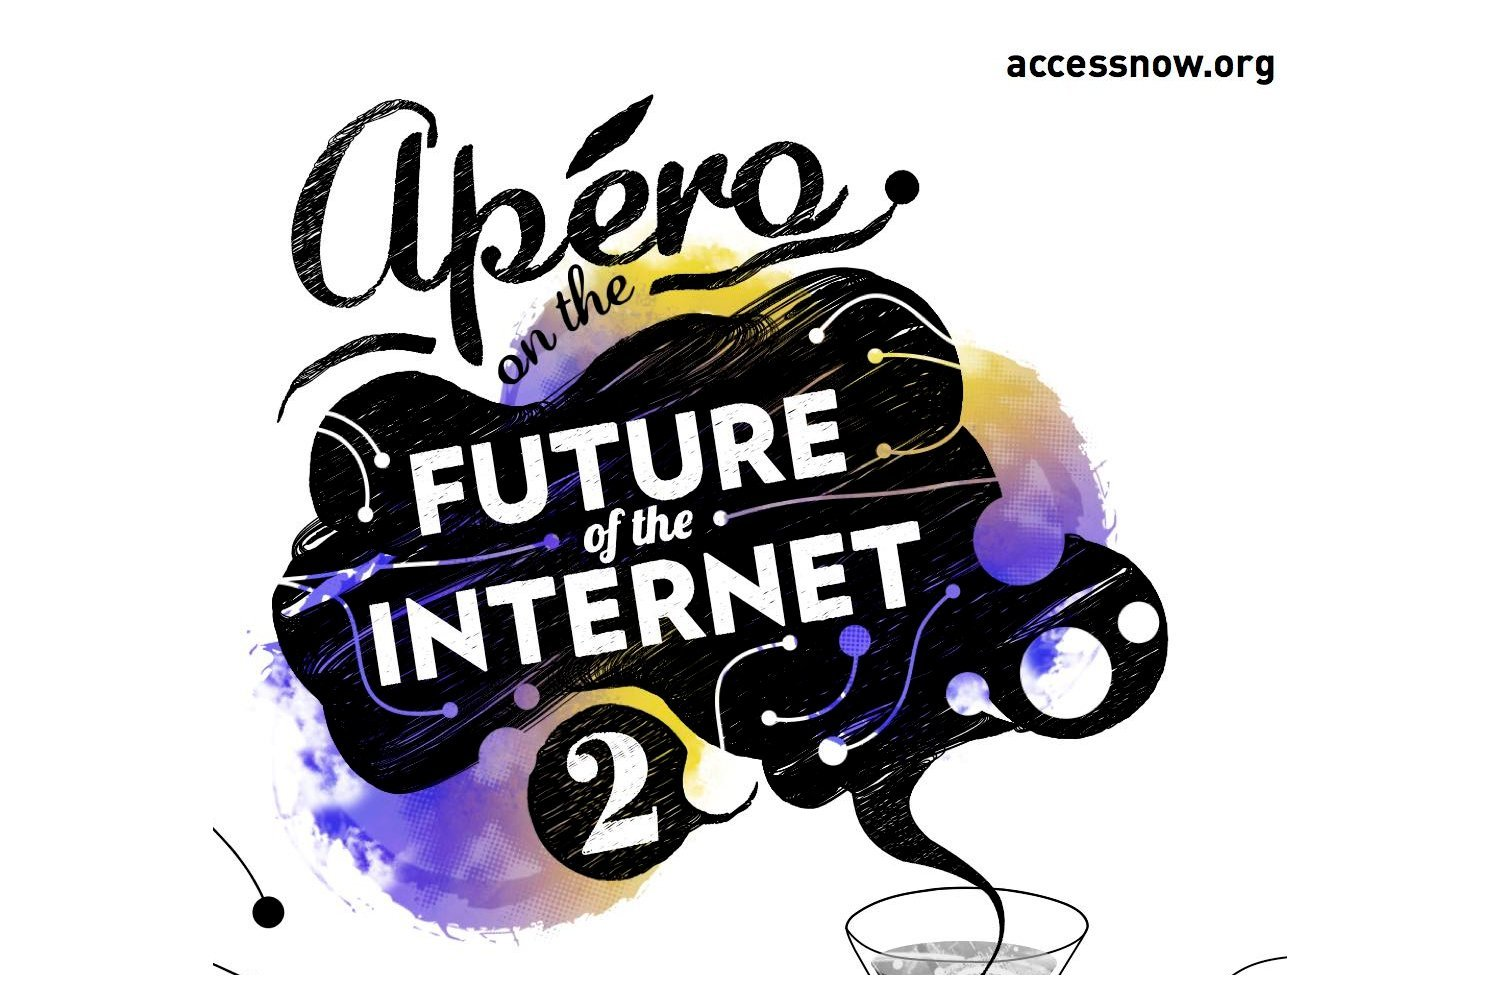 Access Now holds apéro on the Future of the Internet.